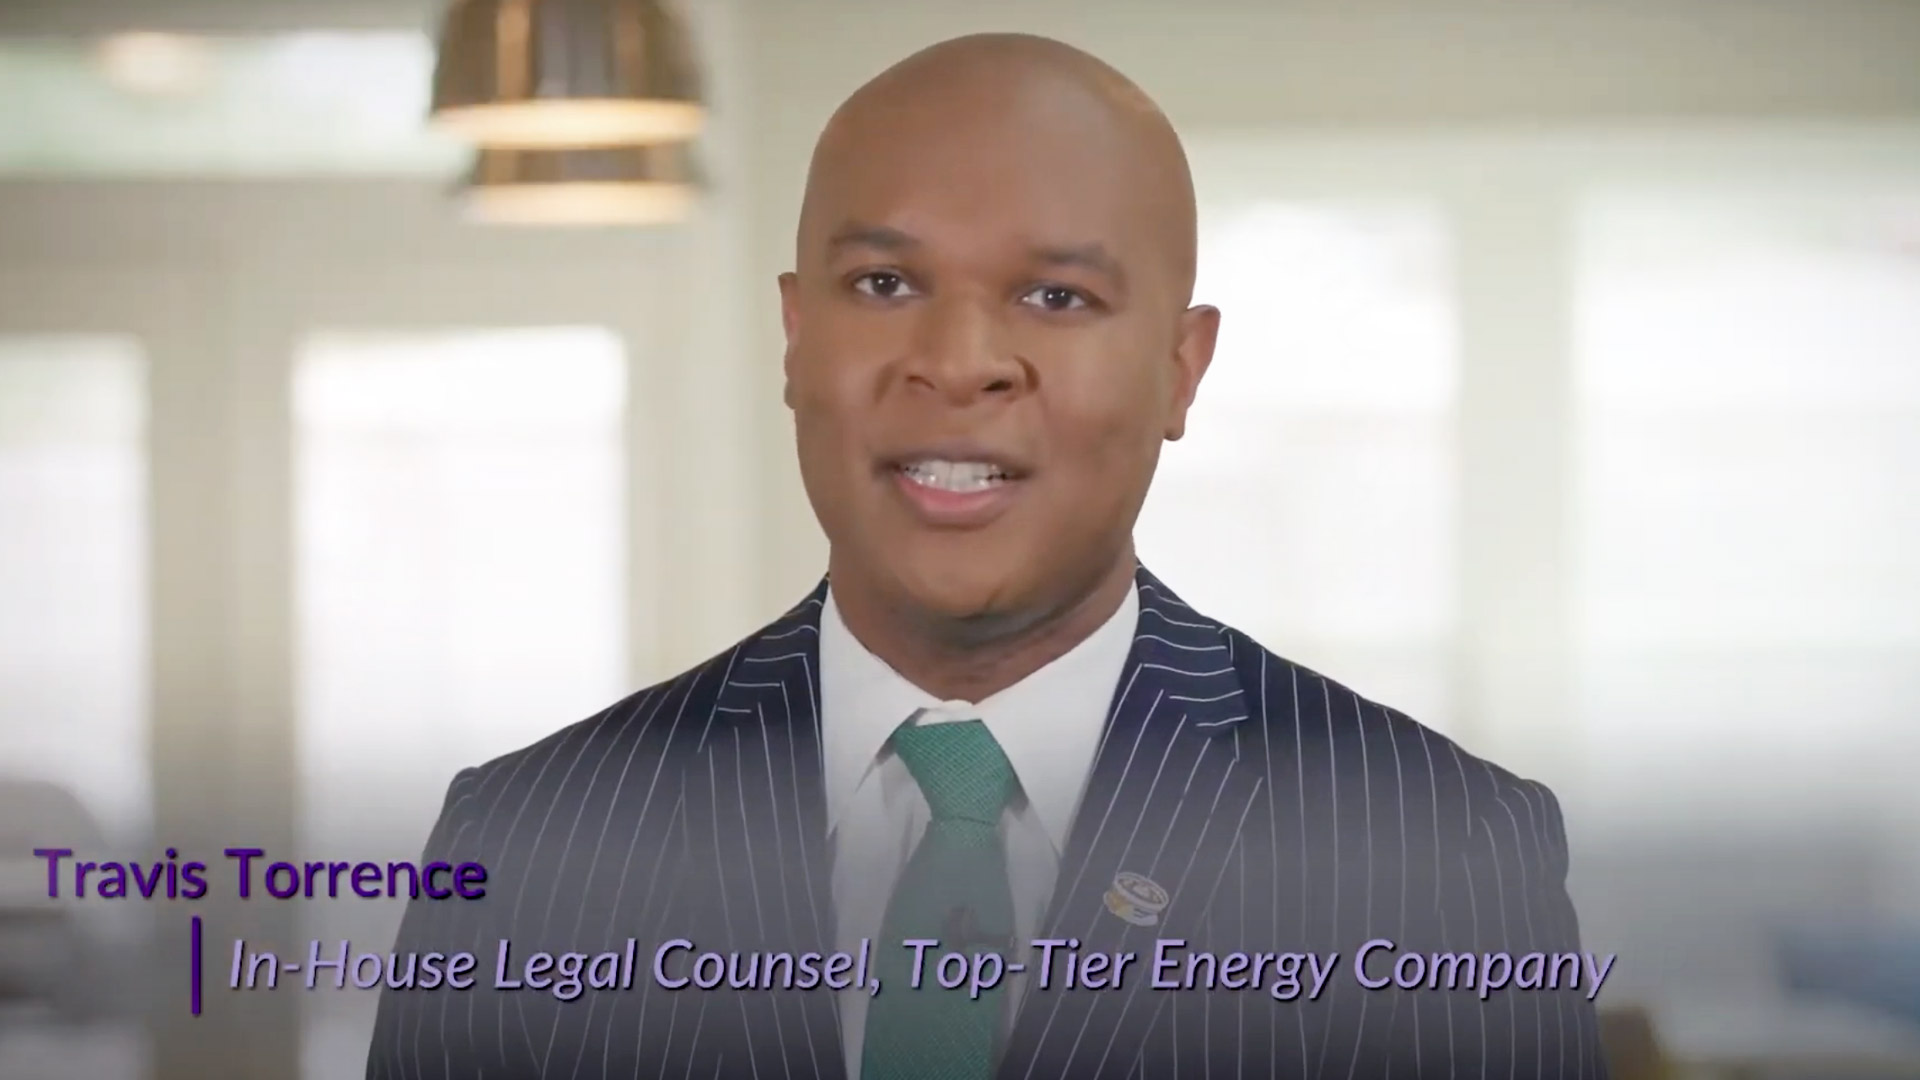 Travis Torrence on Diversity, Equity and Inclusion and the Lavender Law 365® Program - Part 1.